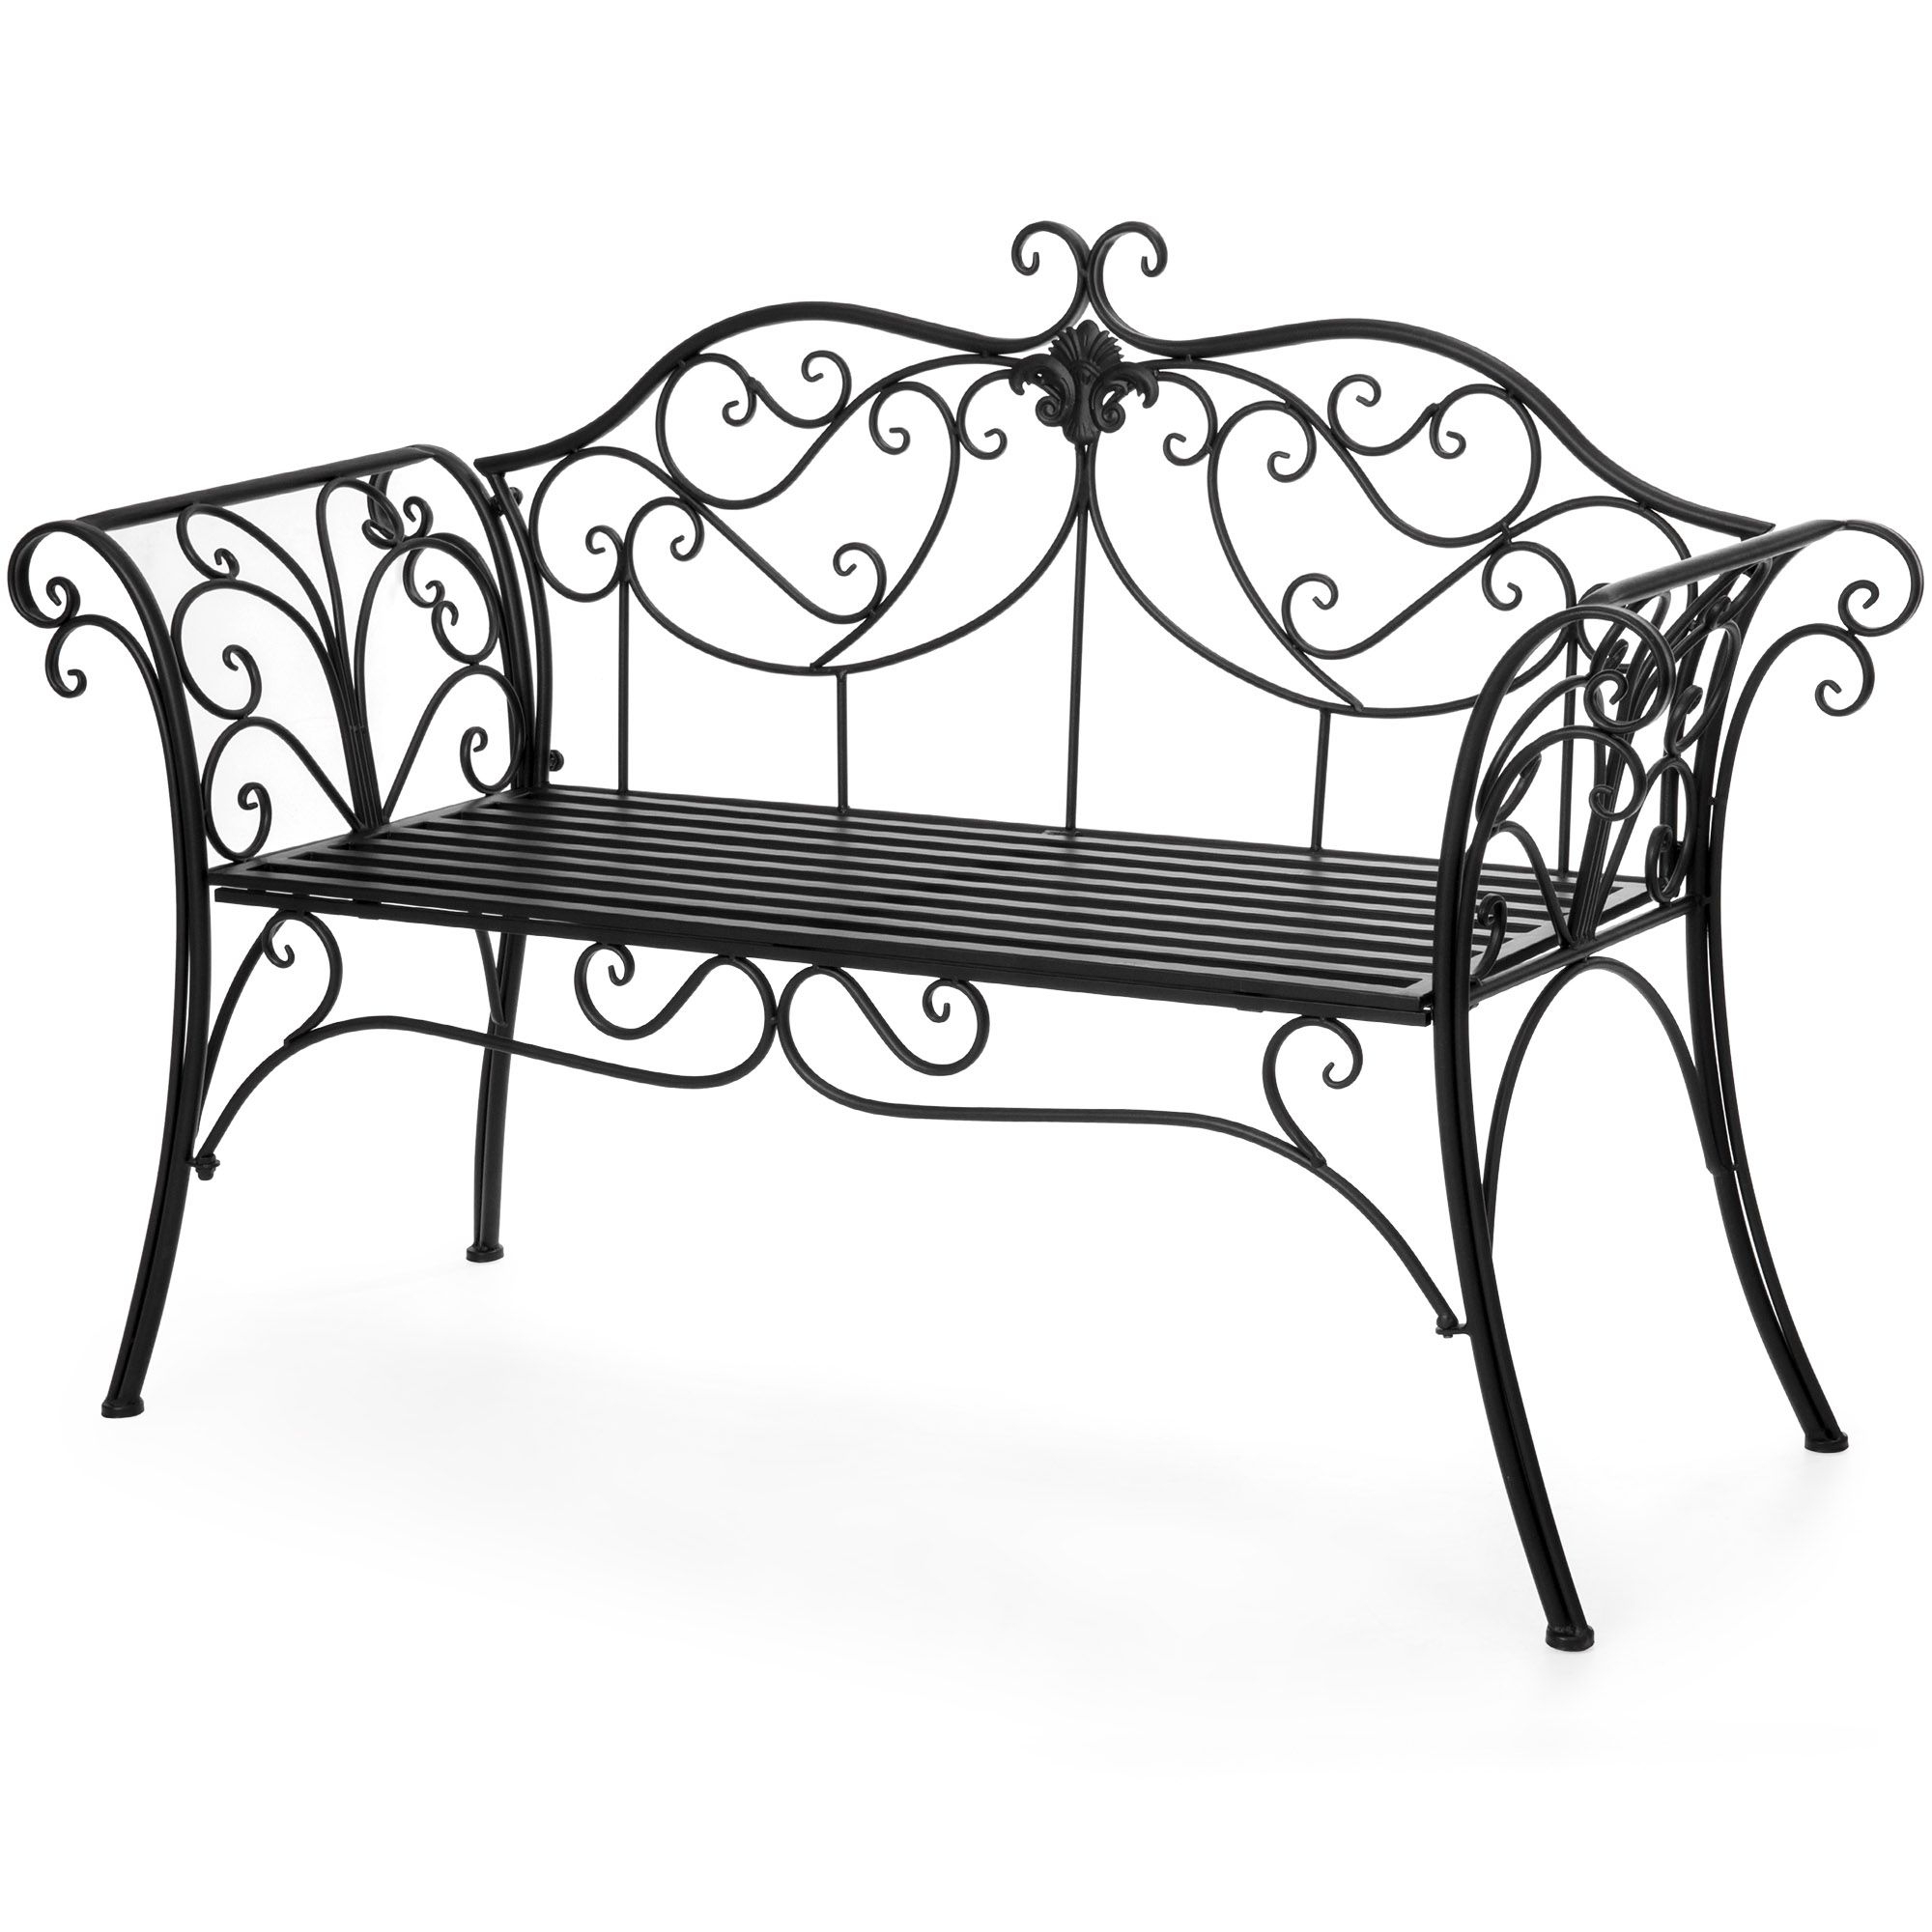 Metal Patio Furniture, Patio Furniture Sets Inside 2 Person Antique Black Iron Outdoor Swings (View 15 of 30)